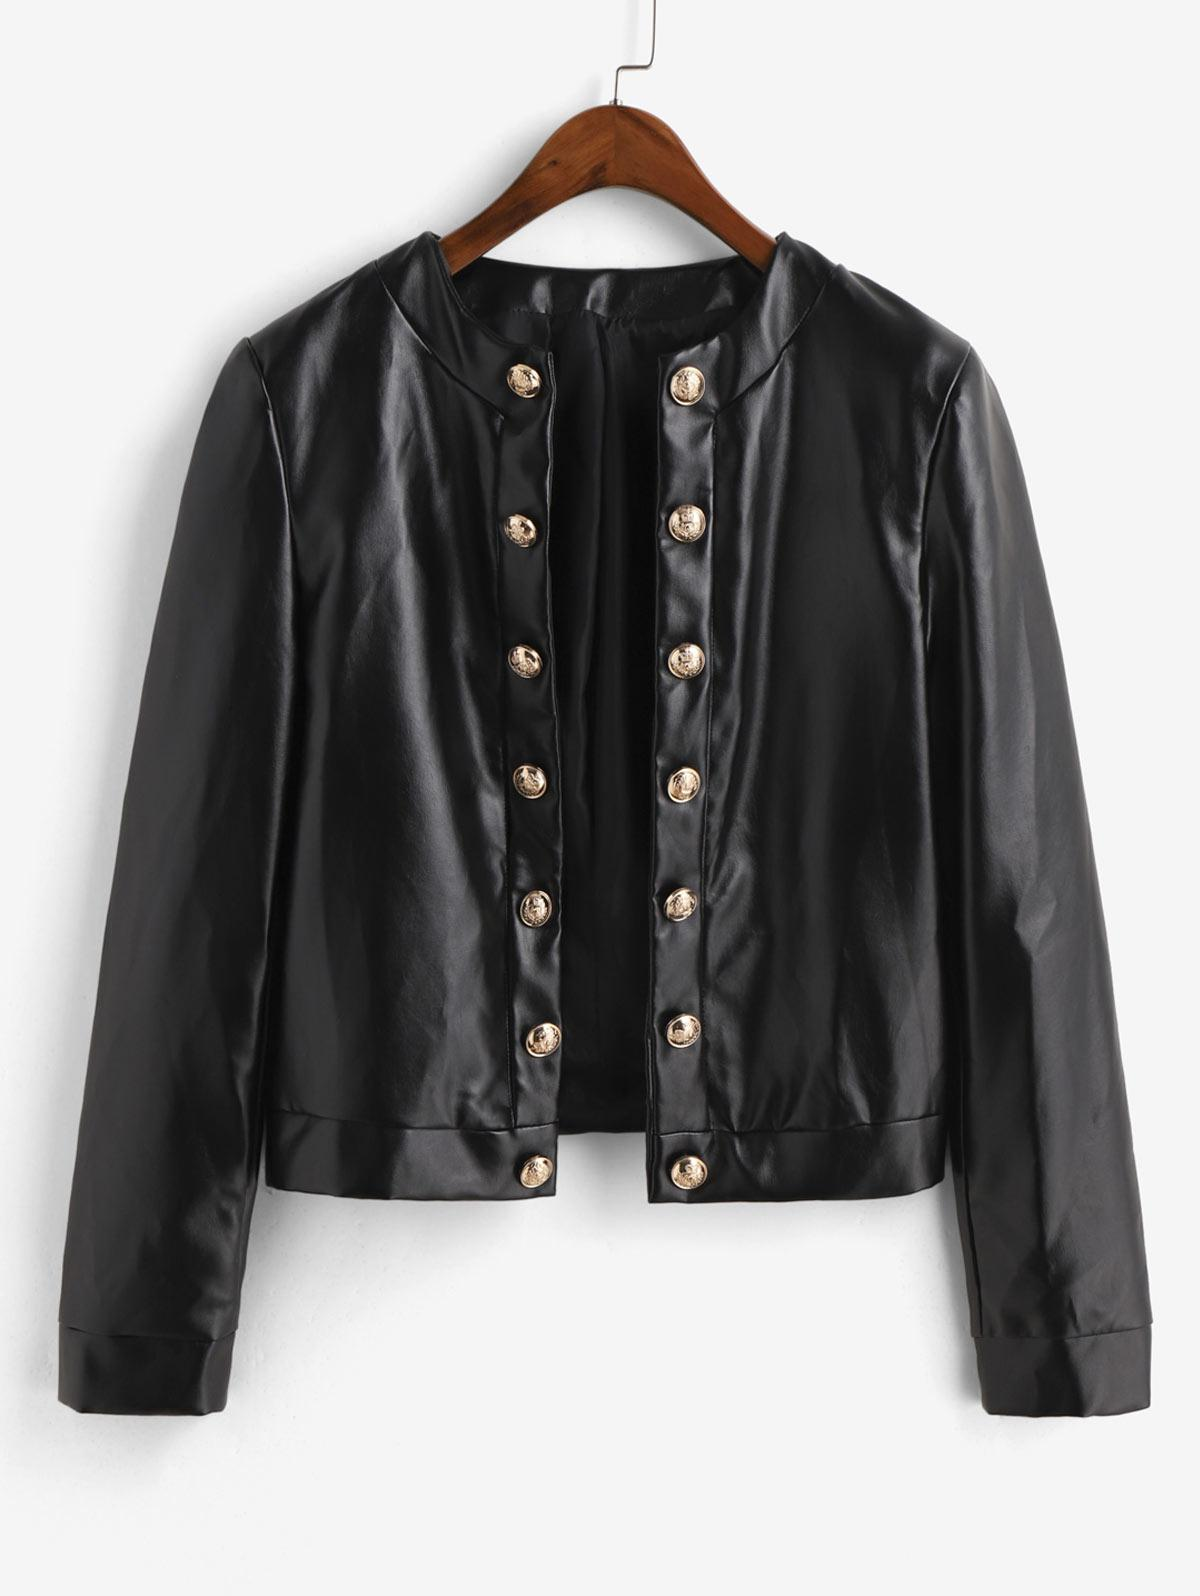 ZAFUL Metallic Button Front Shoulder Pads PU Leather Jacket